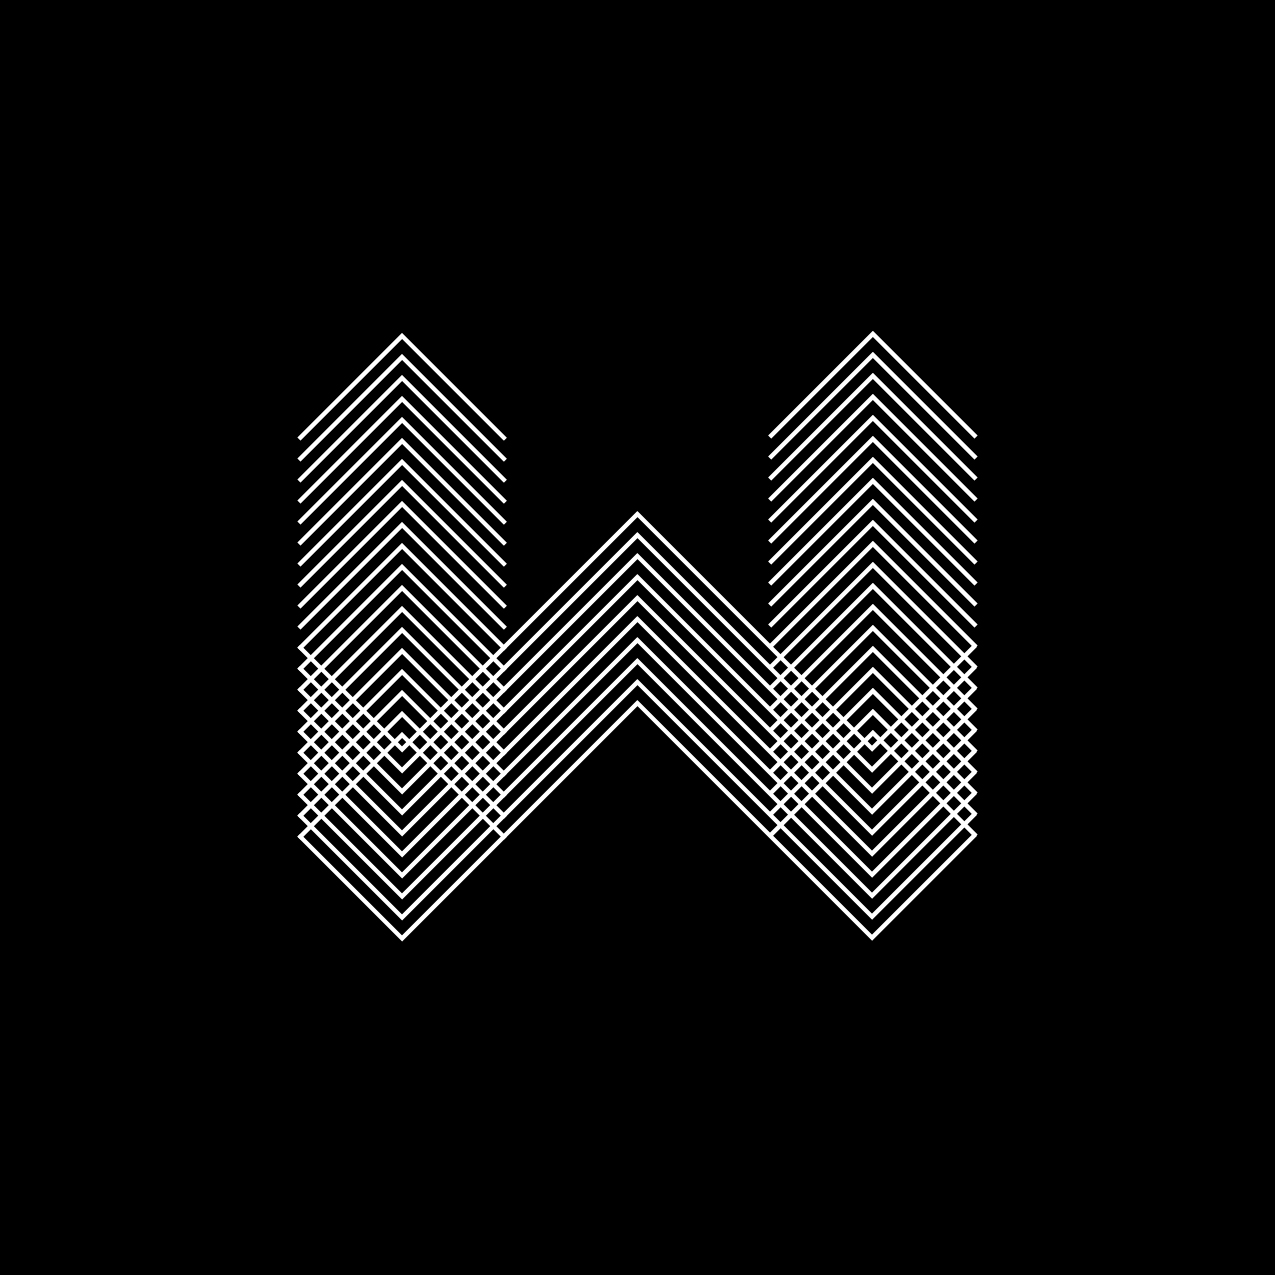 Letter W3 Design by Furia